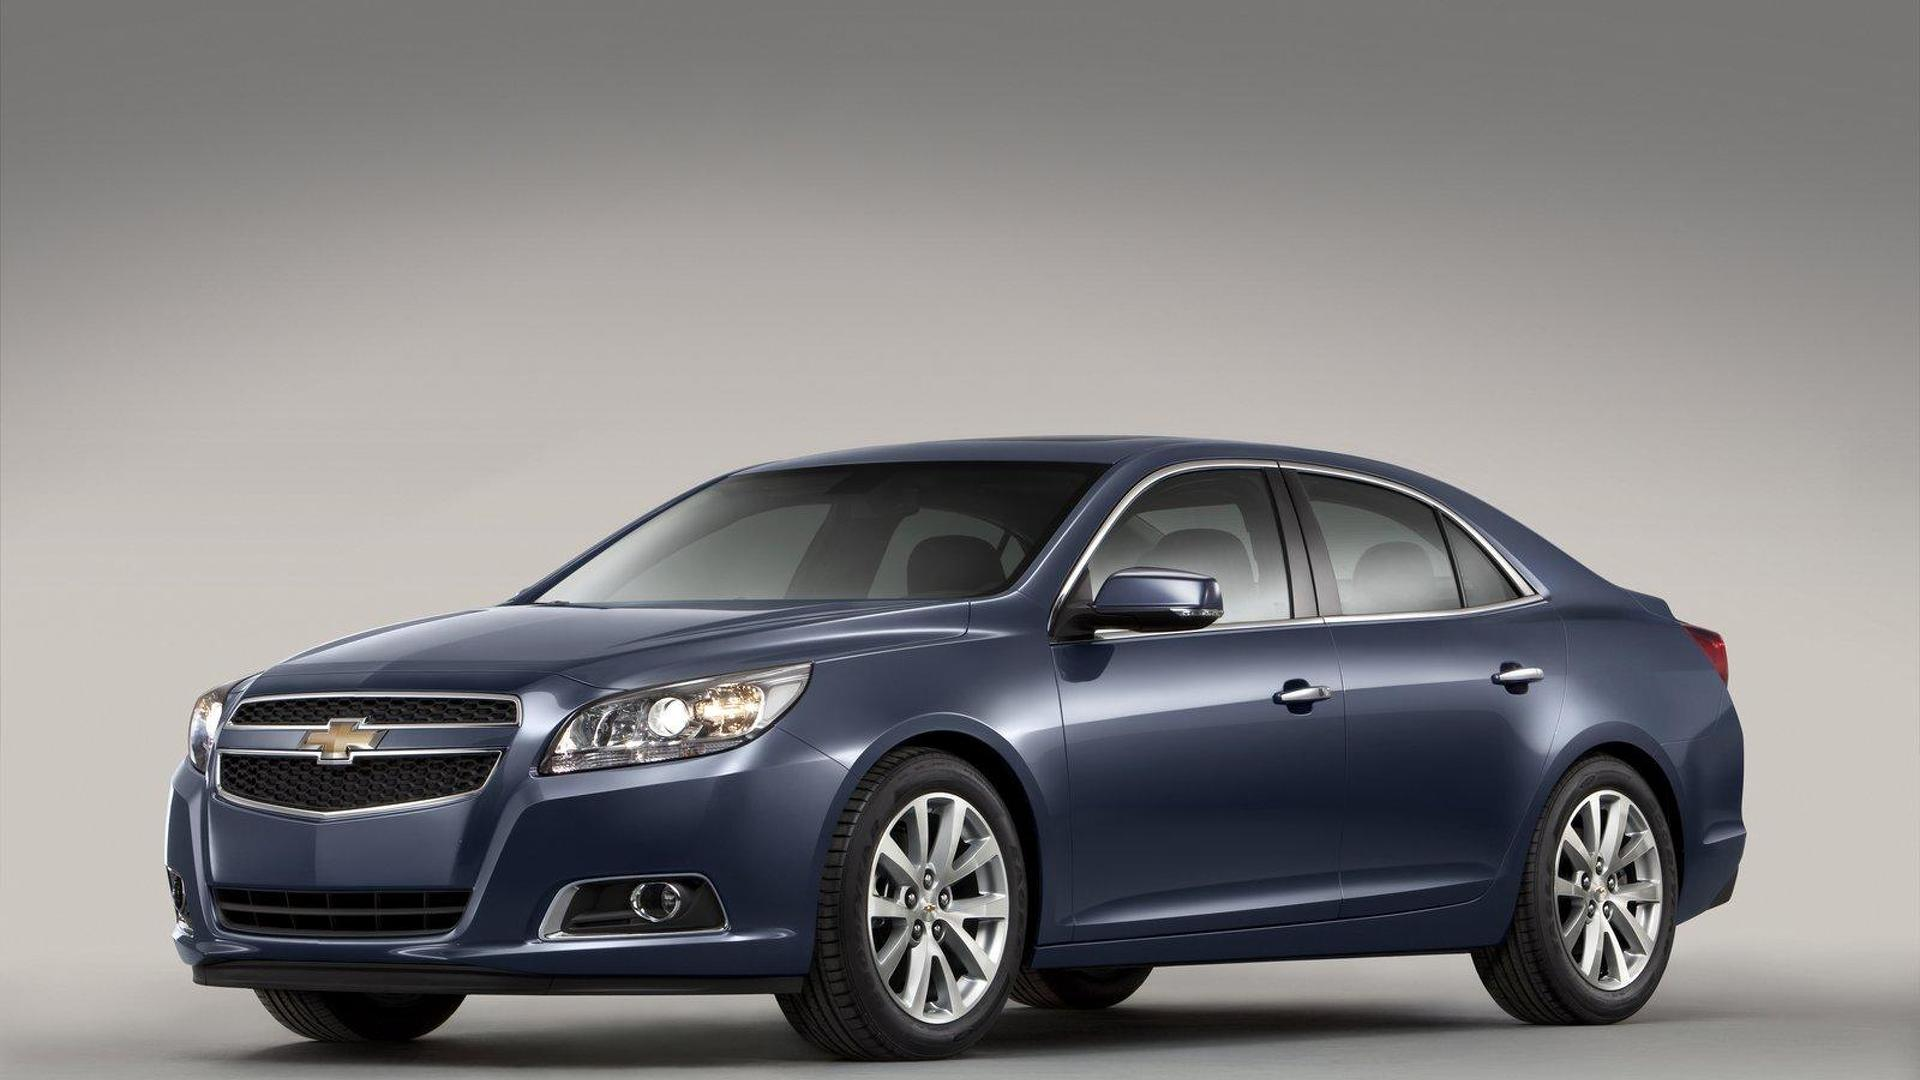 2013 Chevy Malibu details announced at Auto Shanghai